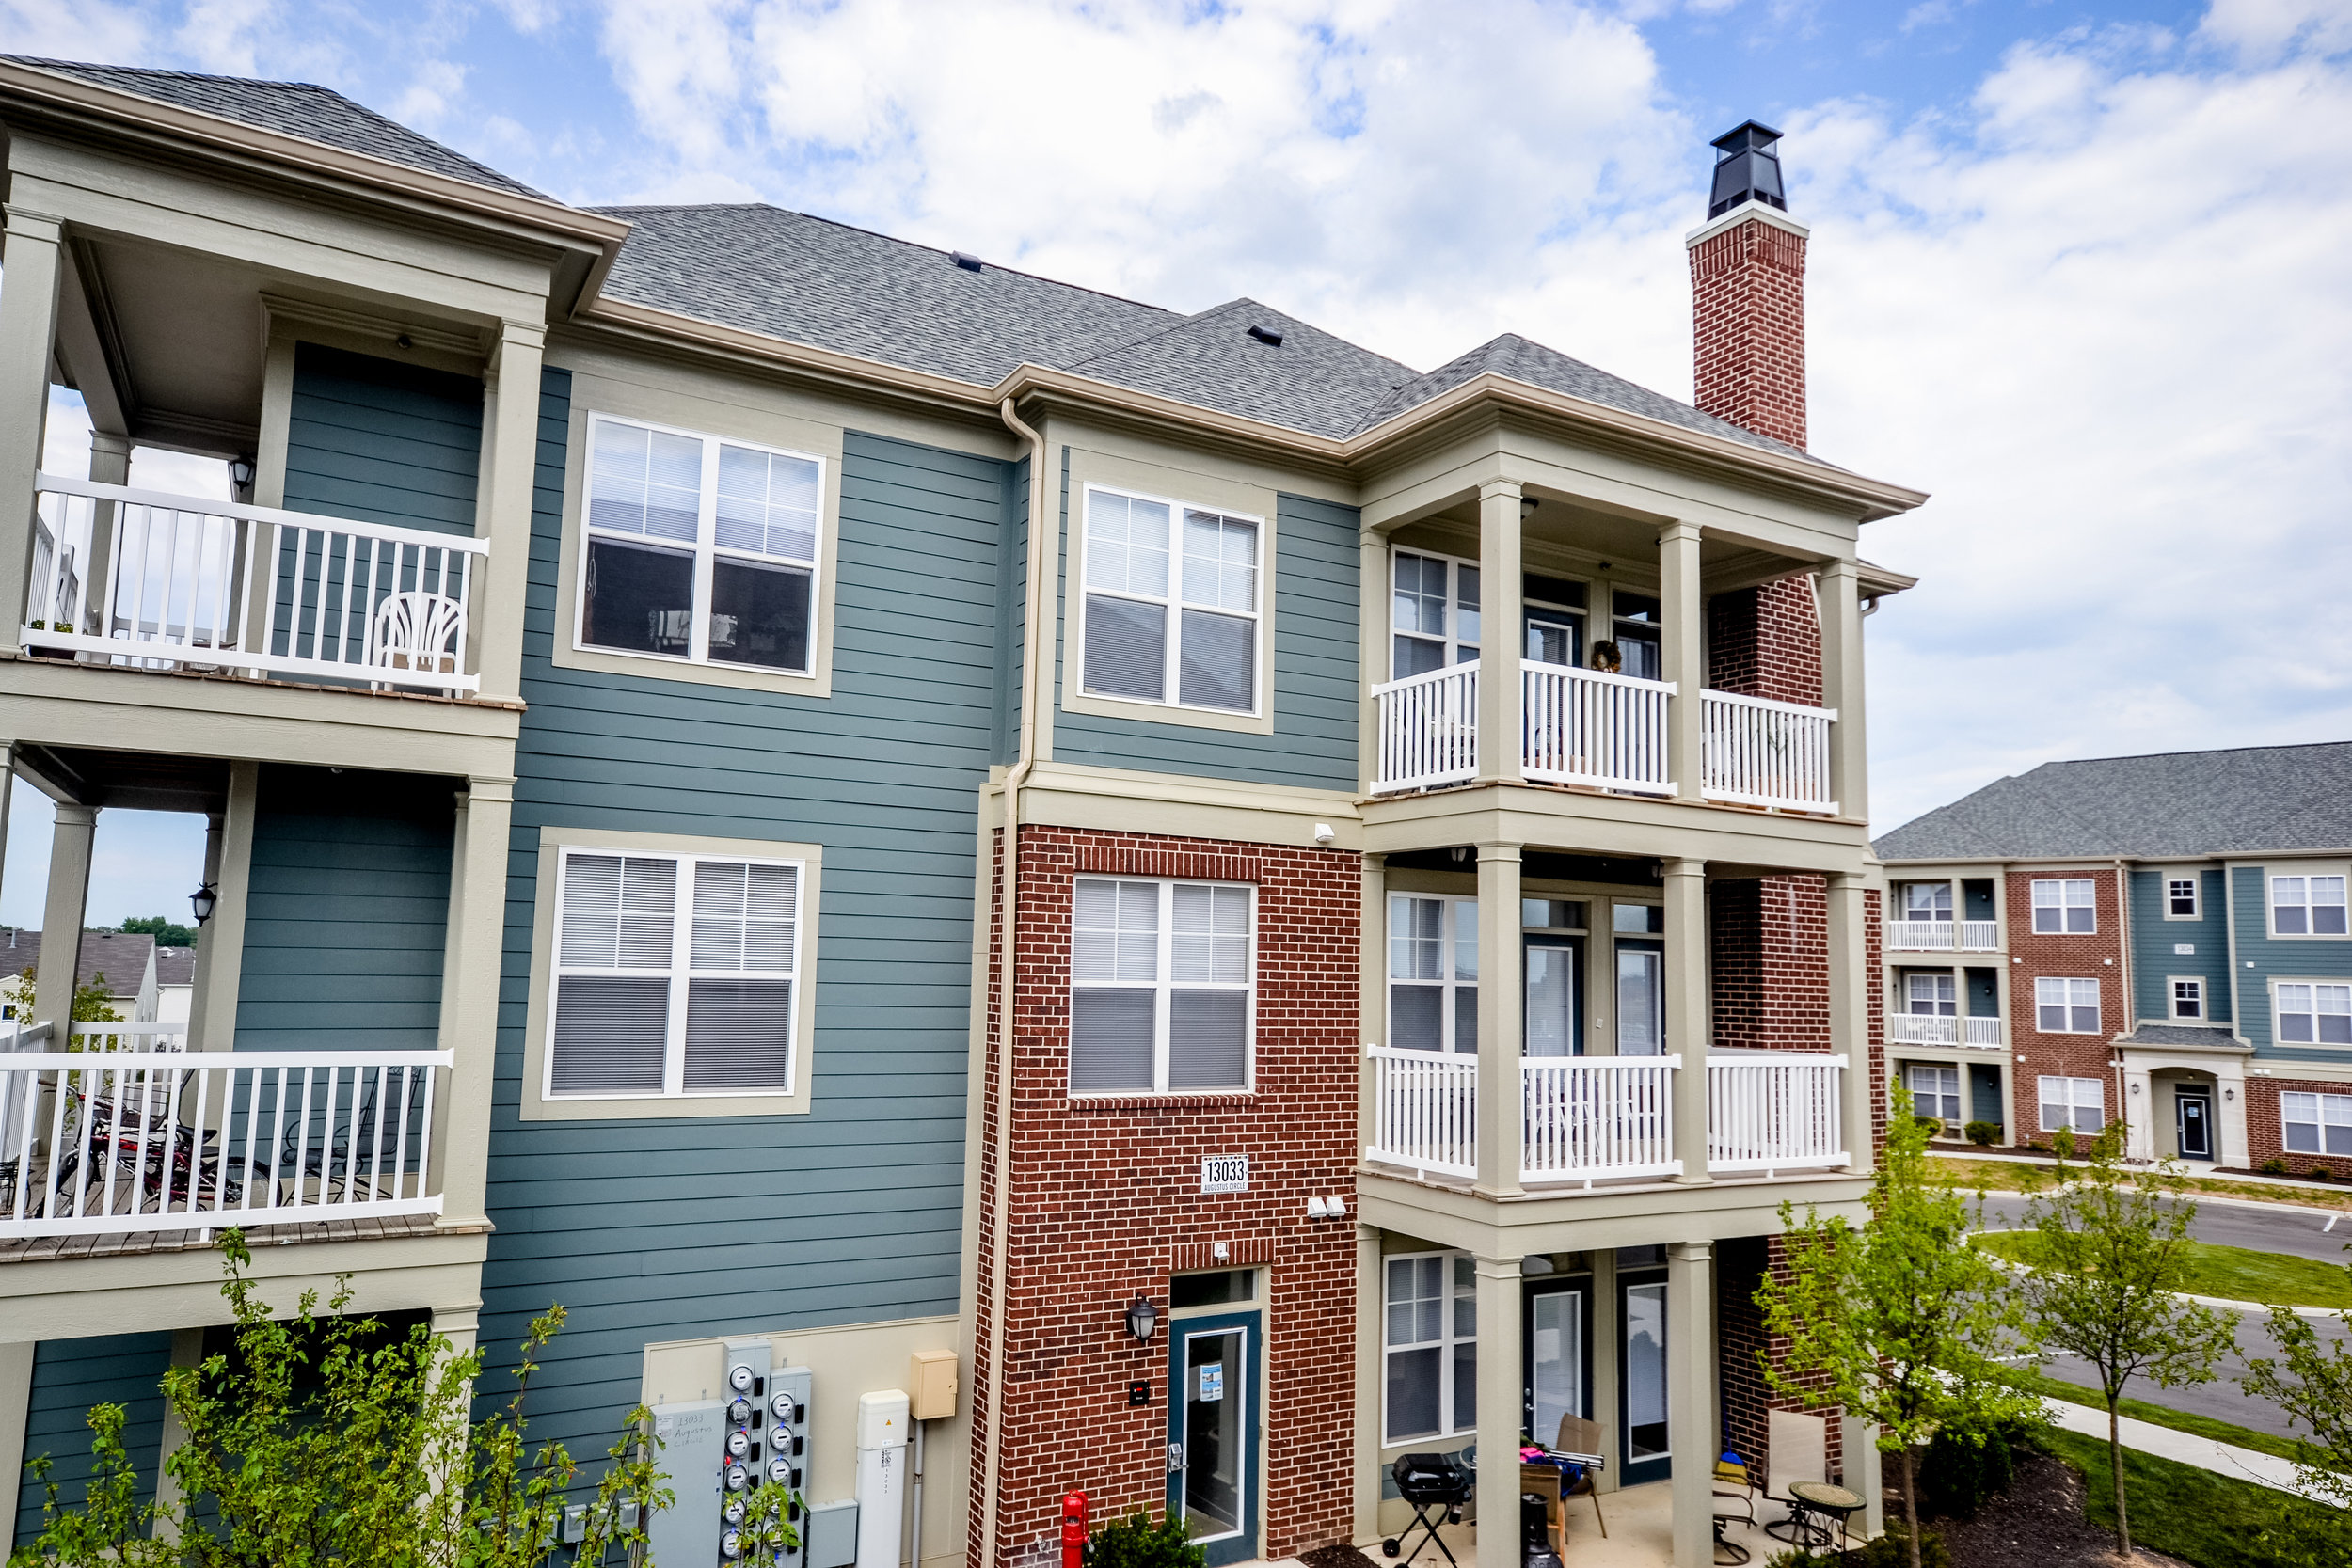 2 Fishers Noblesville Indianapolis Apartments The District Building.jpg